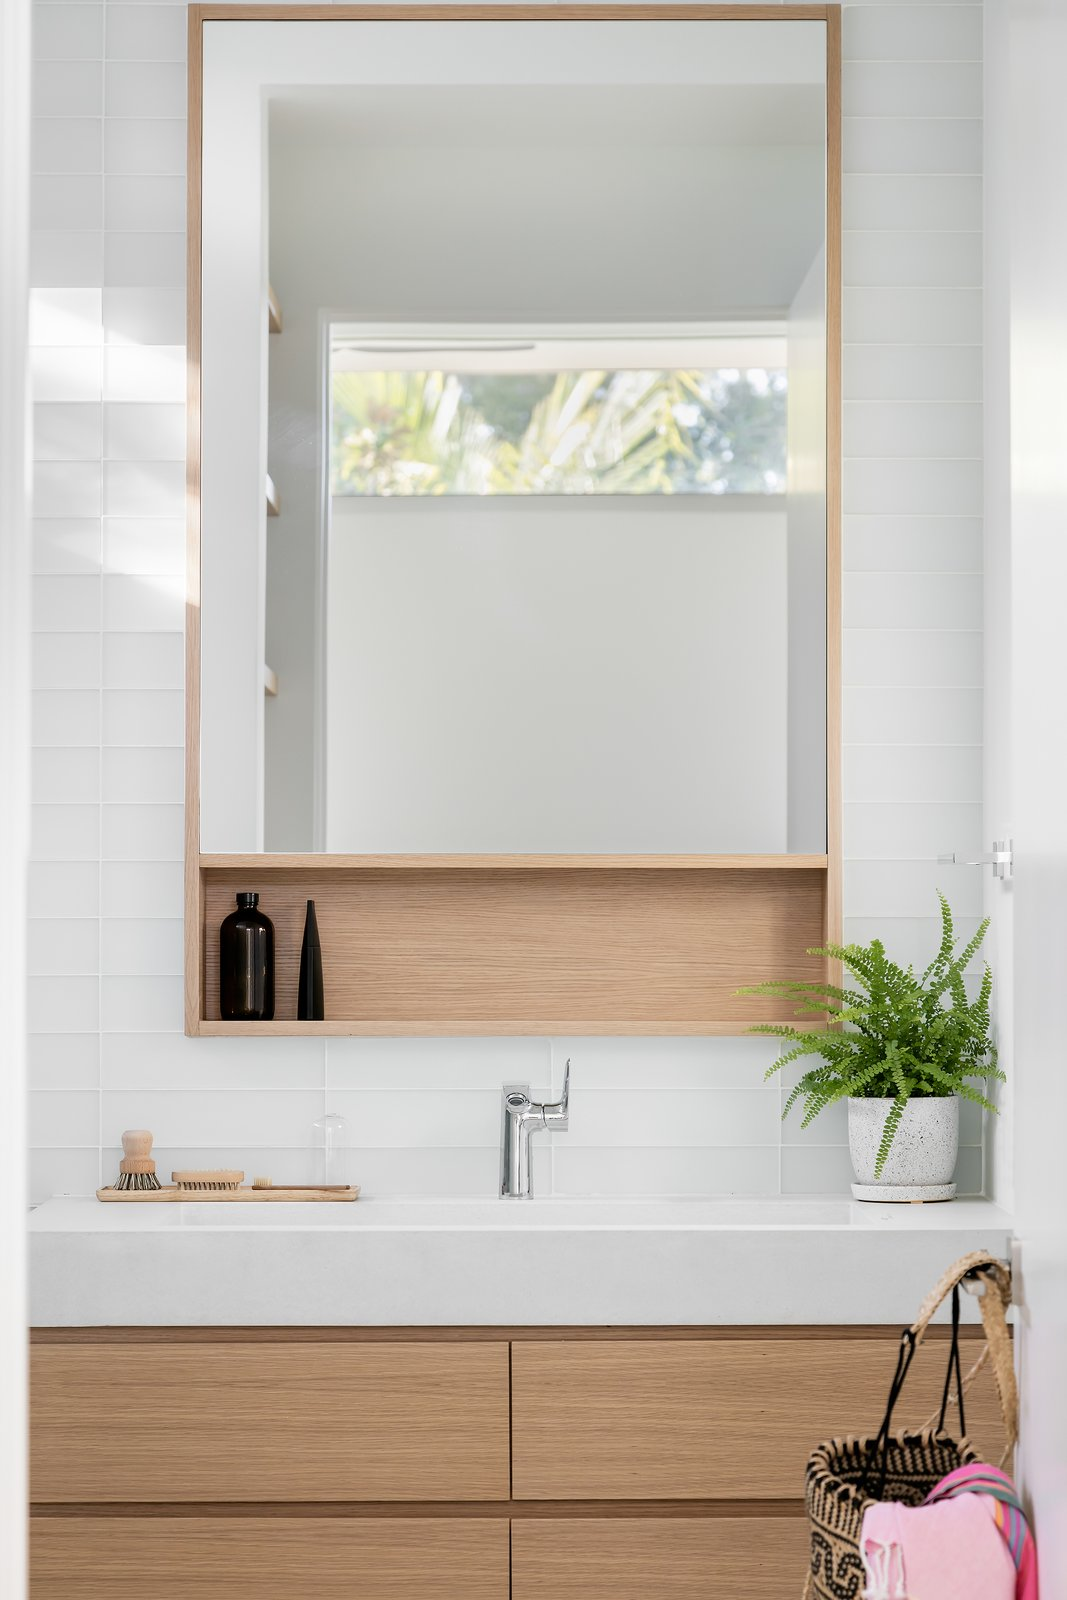 Bath Room, Concrete Counter, Porcelain Tile Floor, One Piece Toilet, Recessed Lighting, Glass Tile Wall, Ceiling Lighting, Open Shower, and Wall Mount Sink  Bayview House by Leader Design Studio